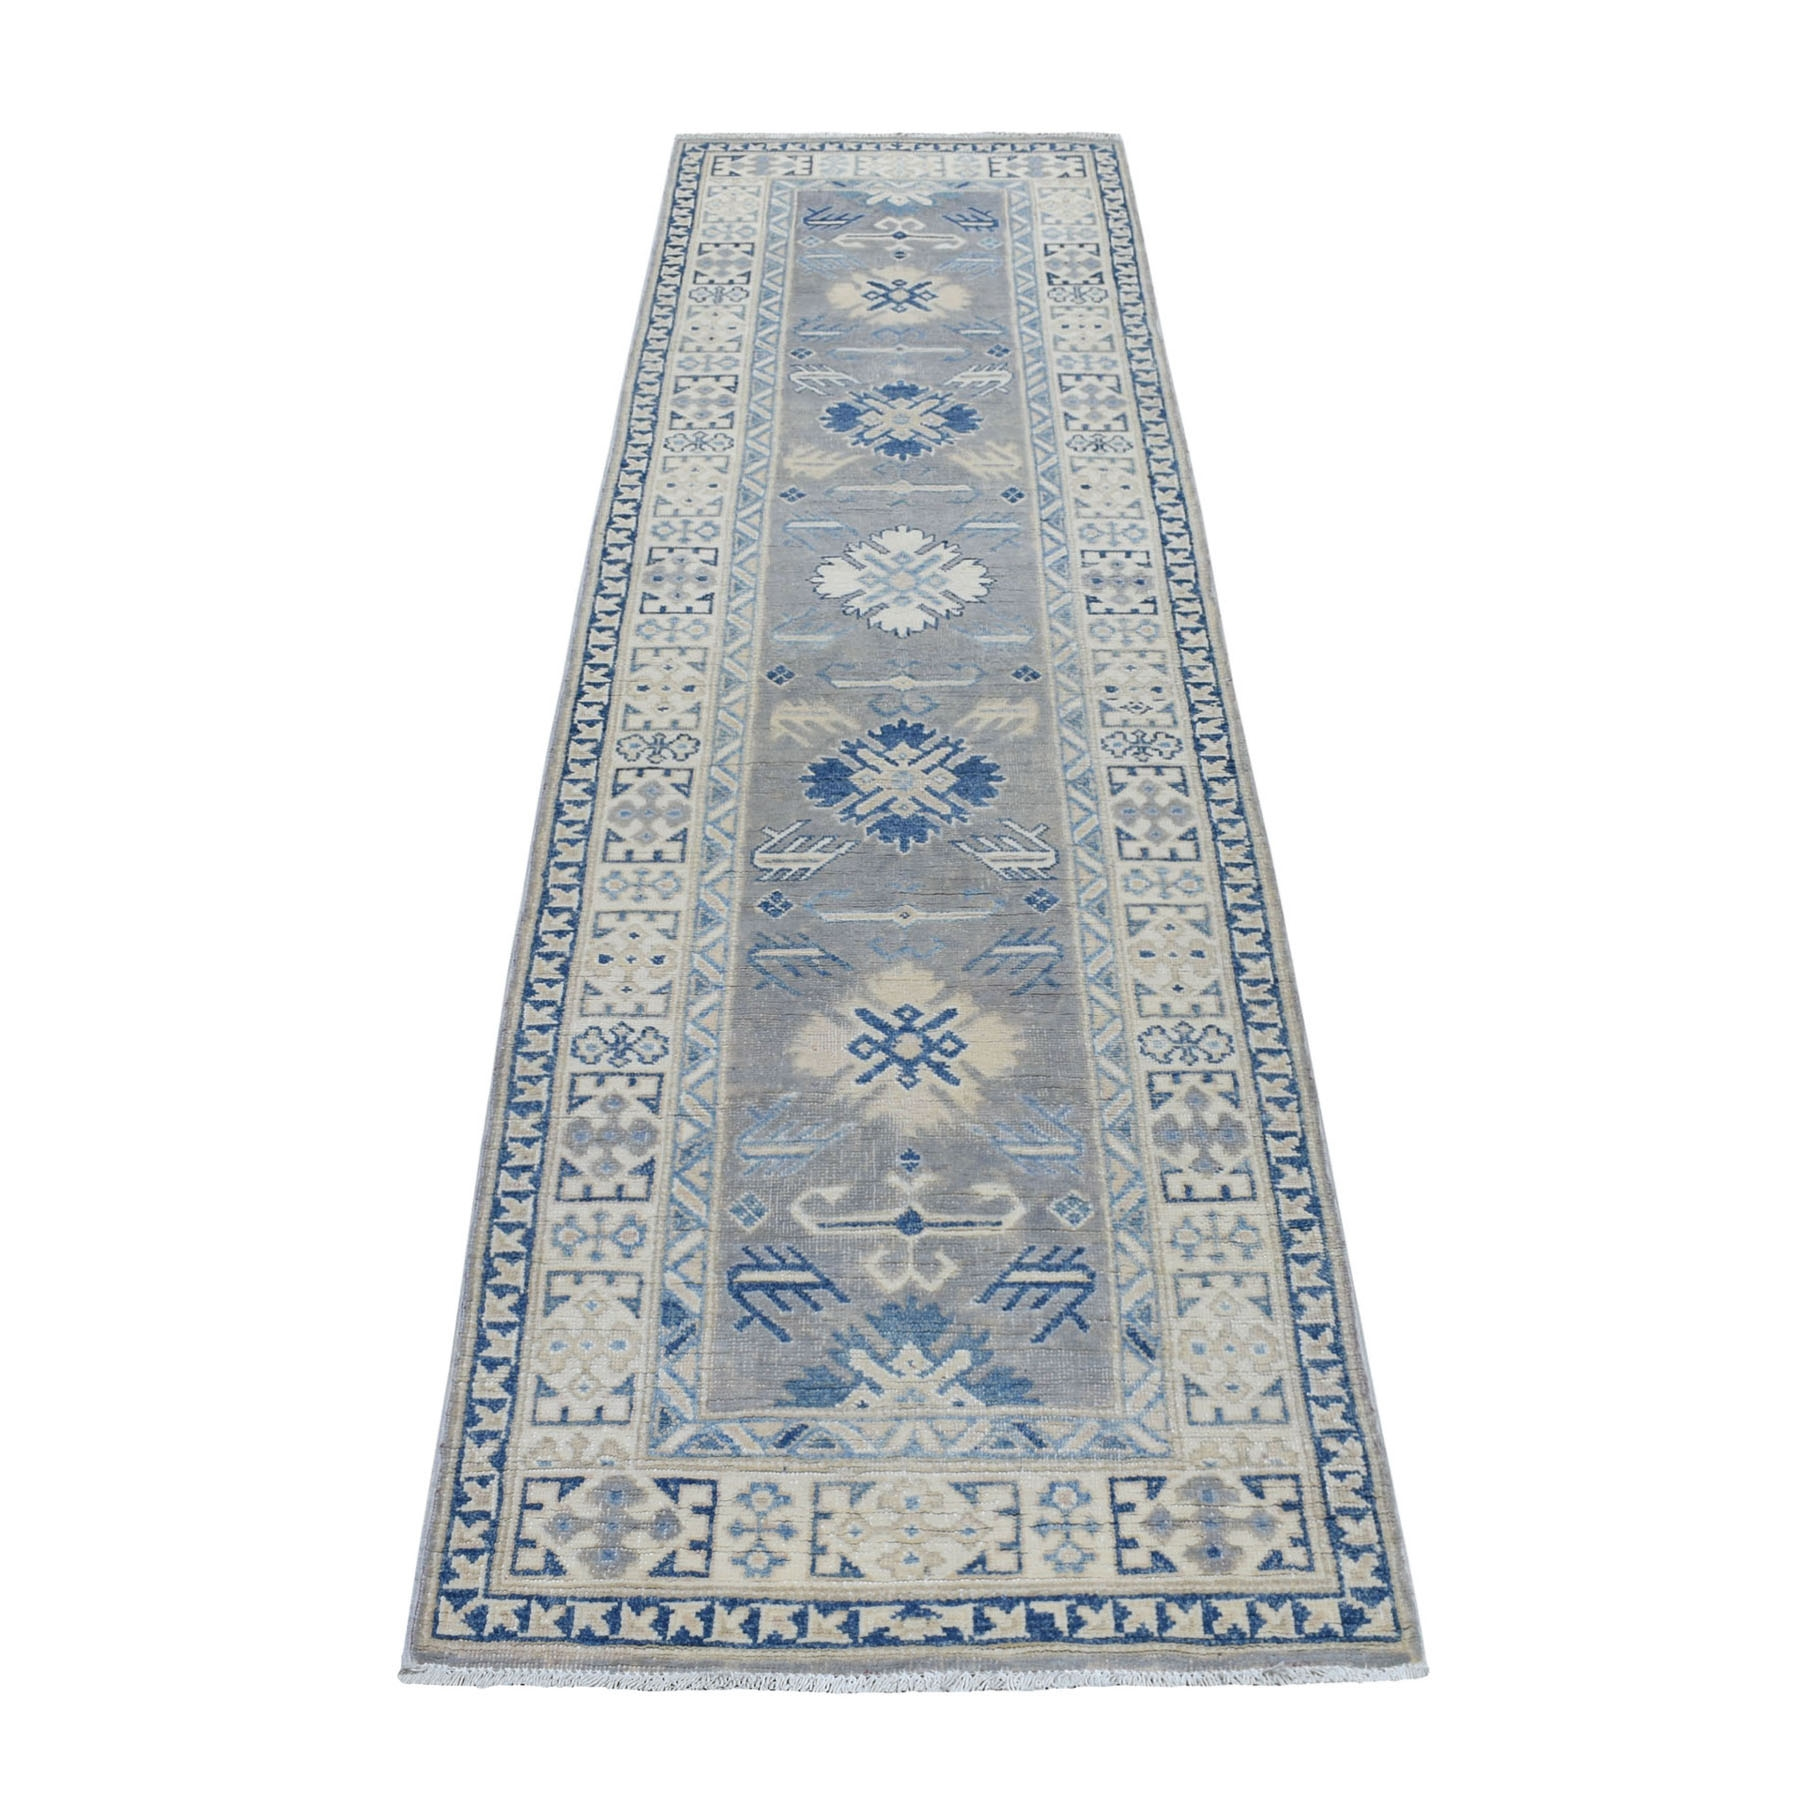 "2'6""x9'4"" Gray Vintage Look Kazak Pure Wool Tribal Design Hand Knotted Runner Oriental Rug"